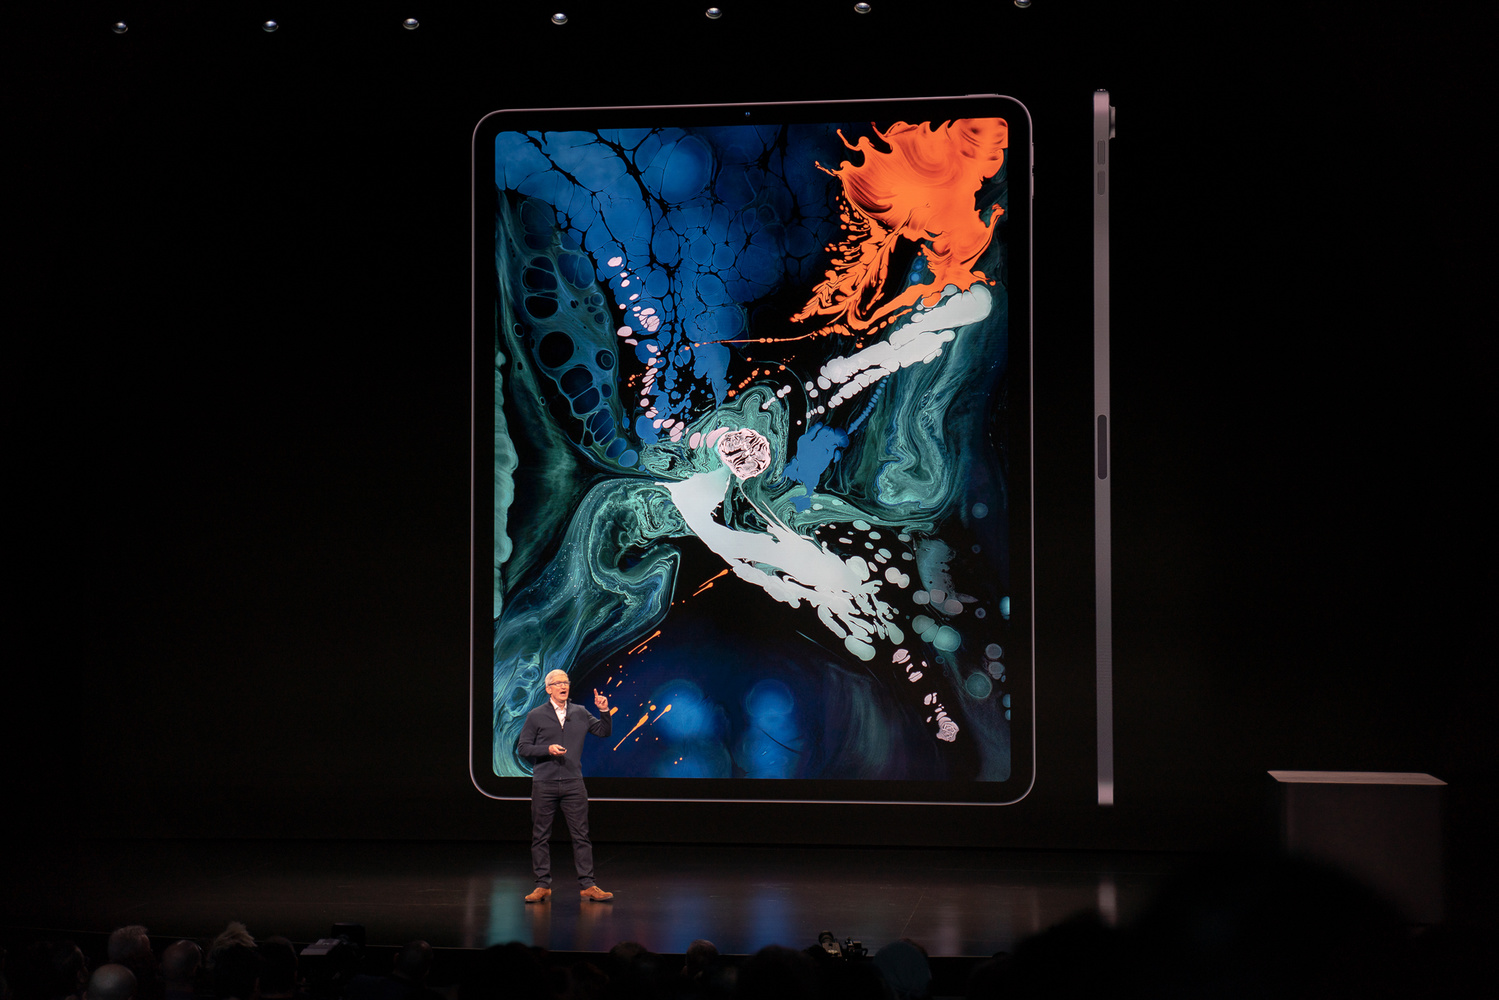 Apple Announces the New iPad Pro, Demos Full Version of